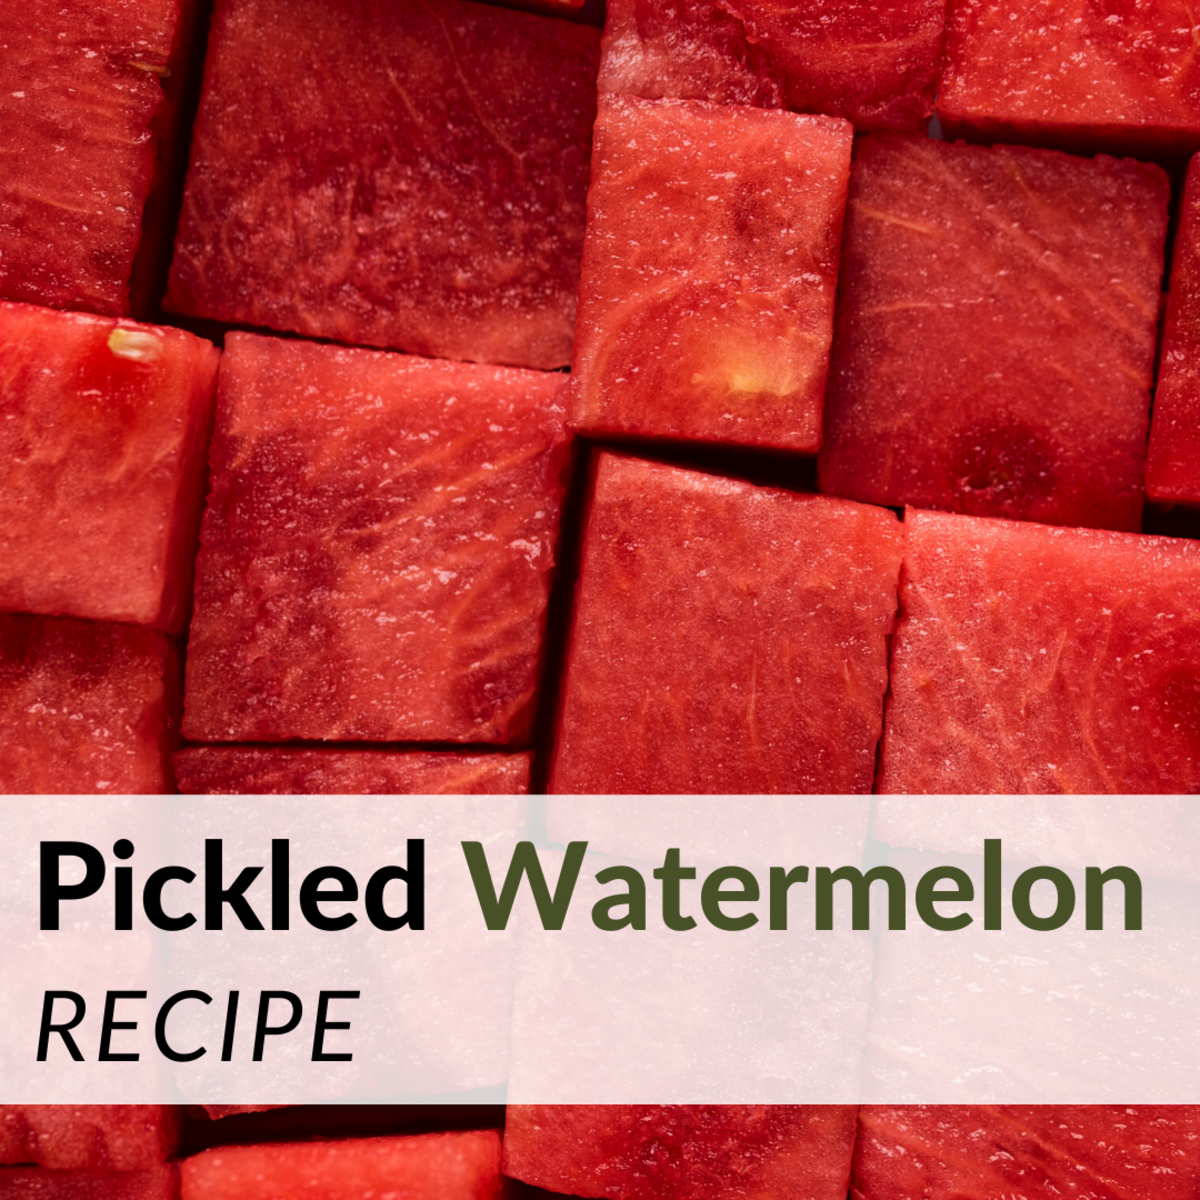 Pickled Watermelon Recipe: Summertime in a Jar